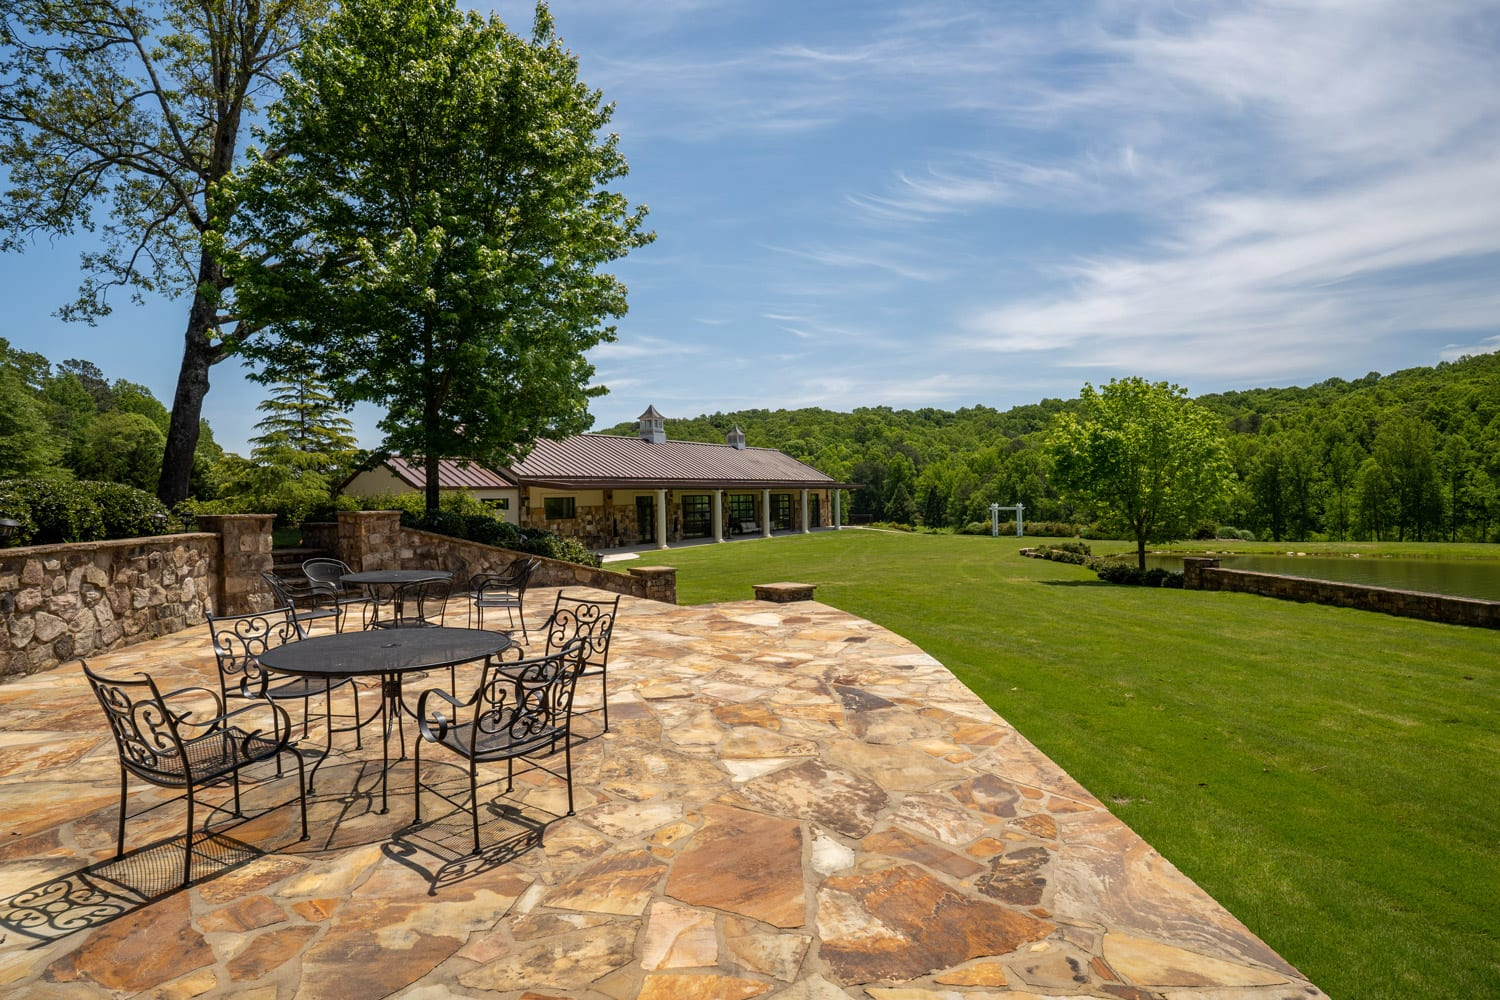 Stone patio and venue